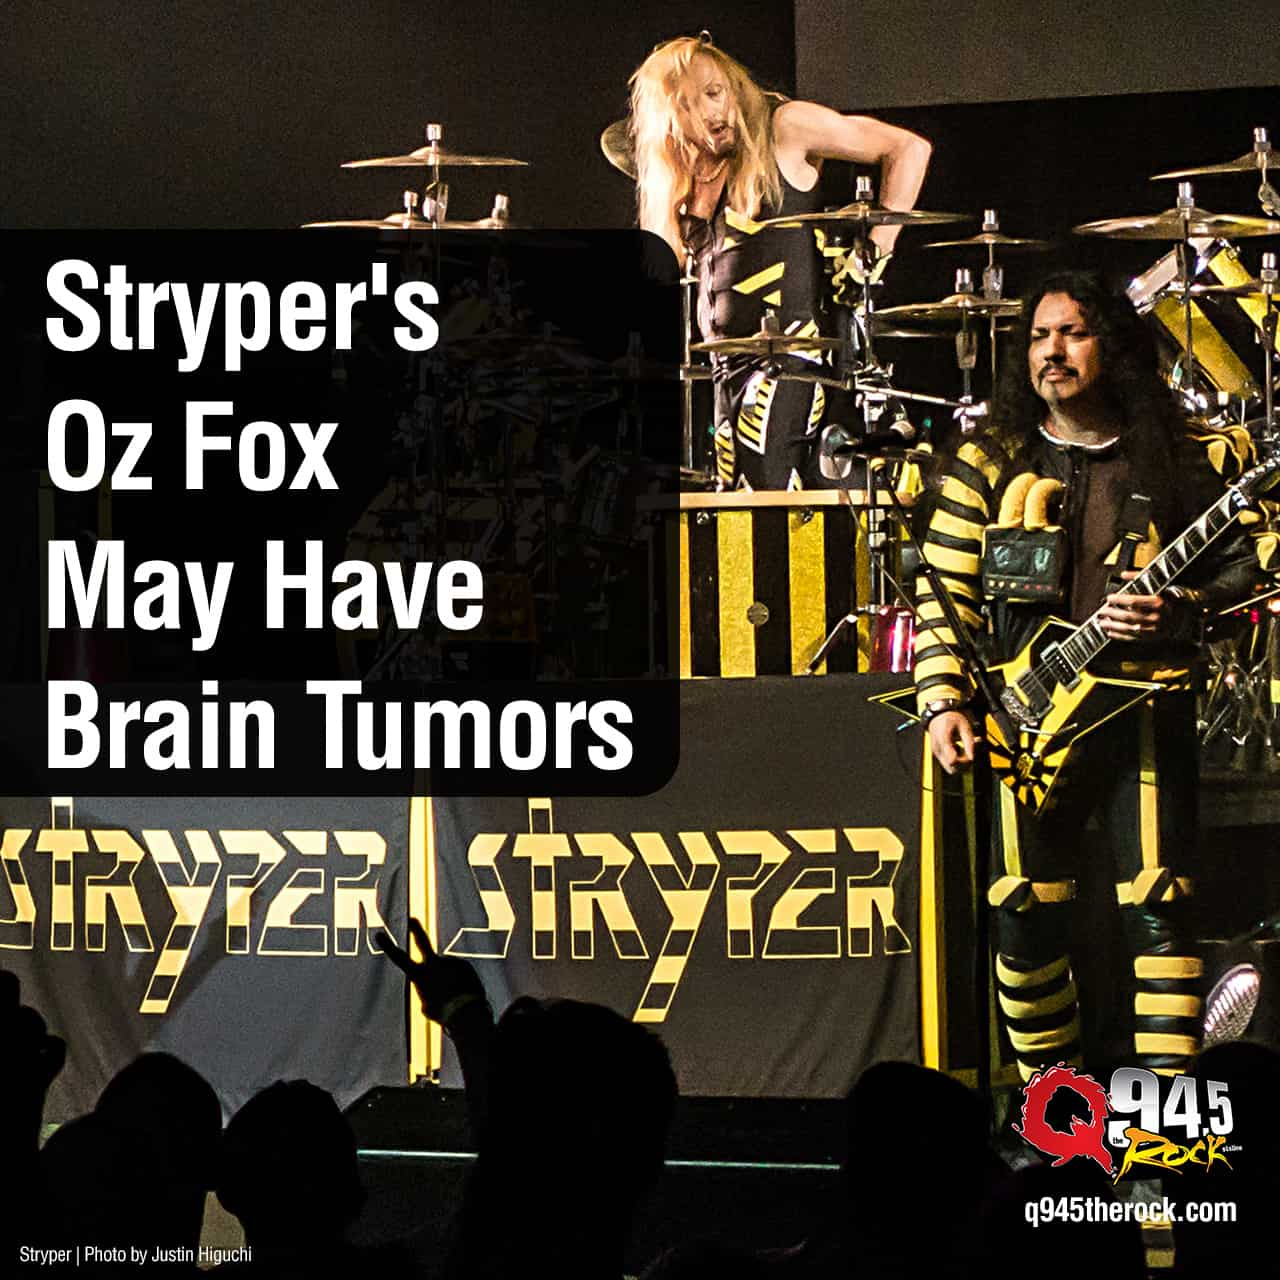 Stryper's Oz Fox May Have Brain Tumors